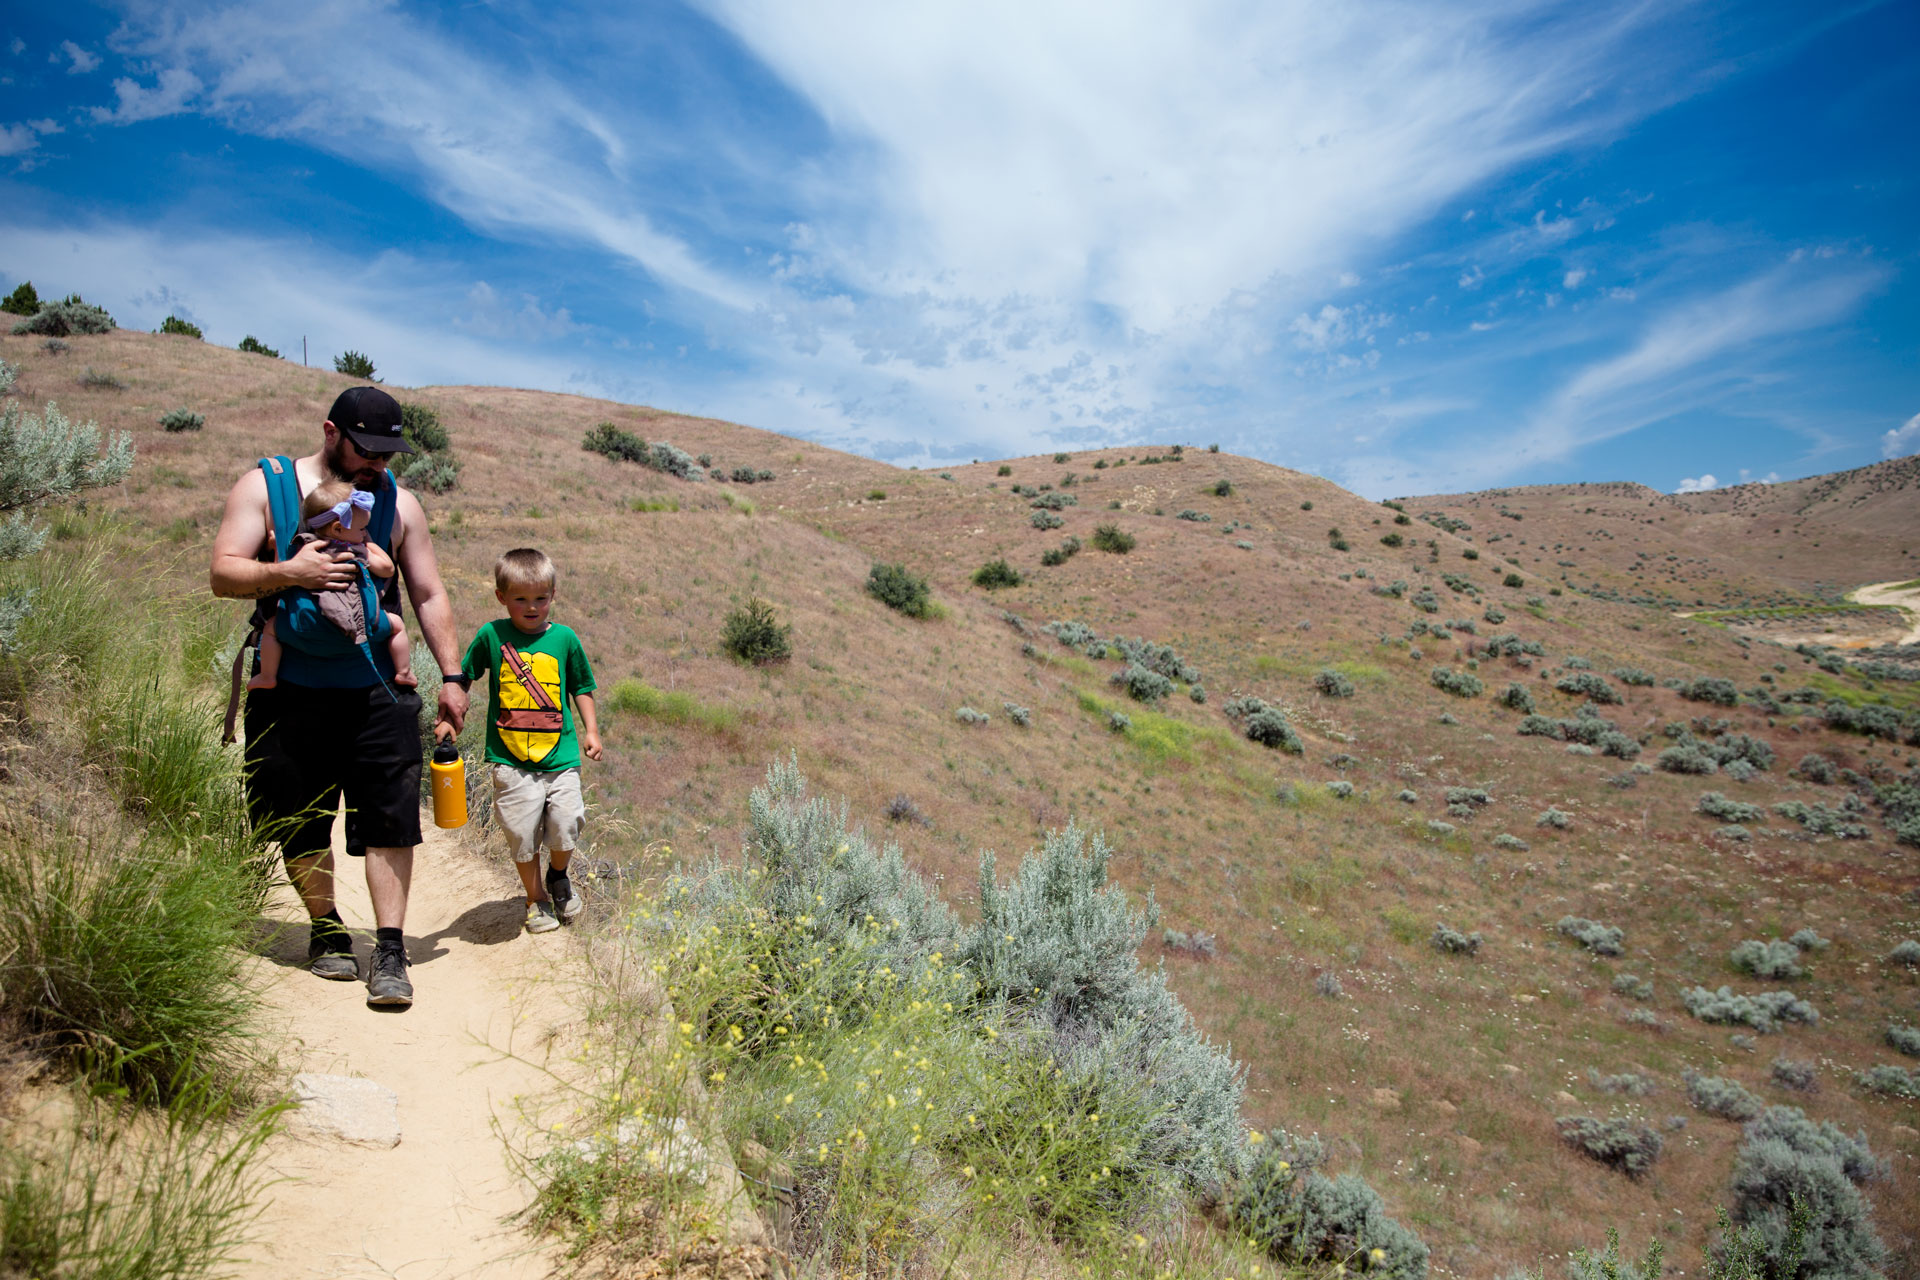 dad holding hands of son while hiking the foothills and holding infant daughter as well